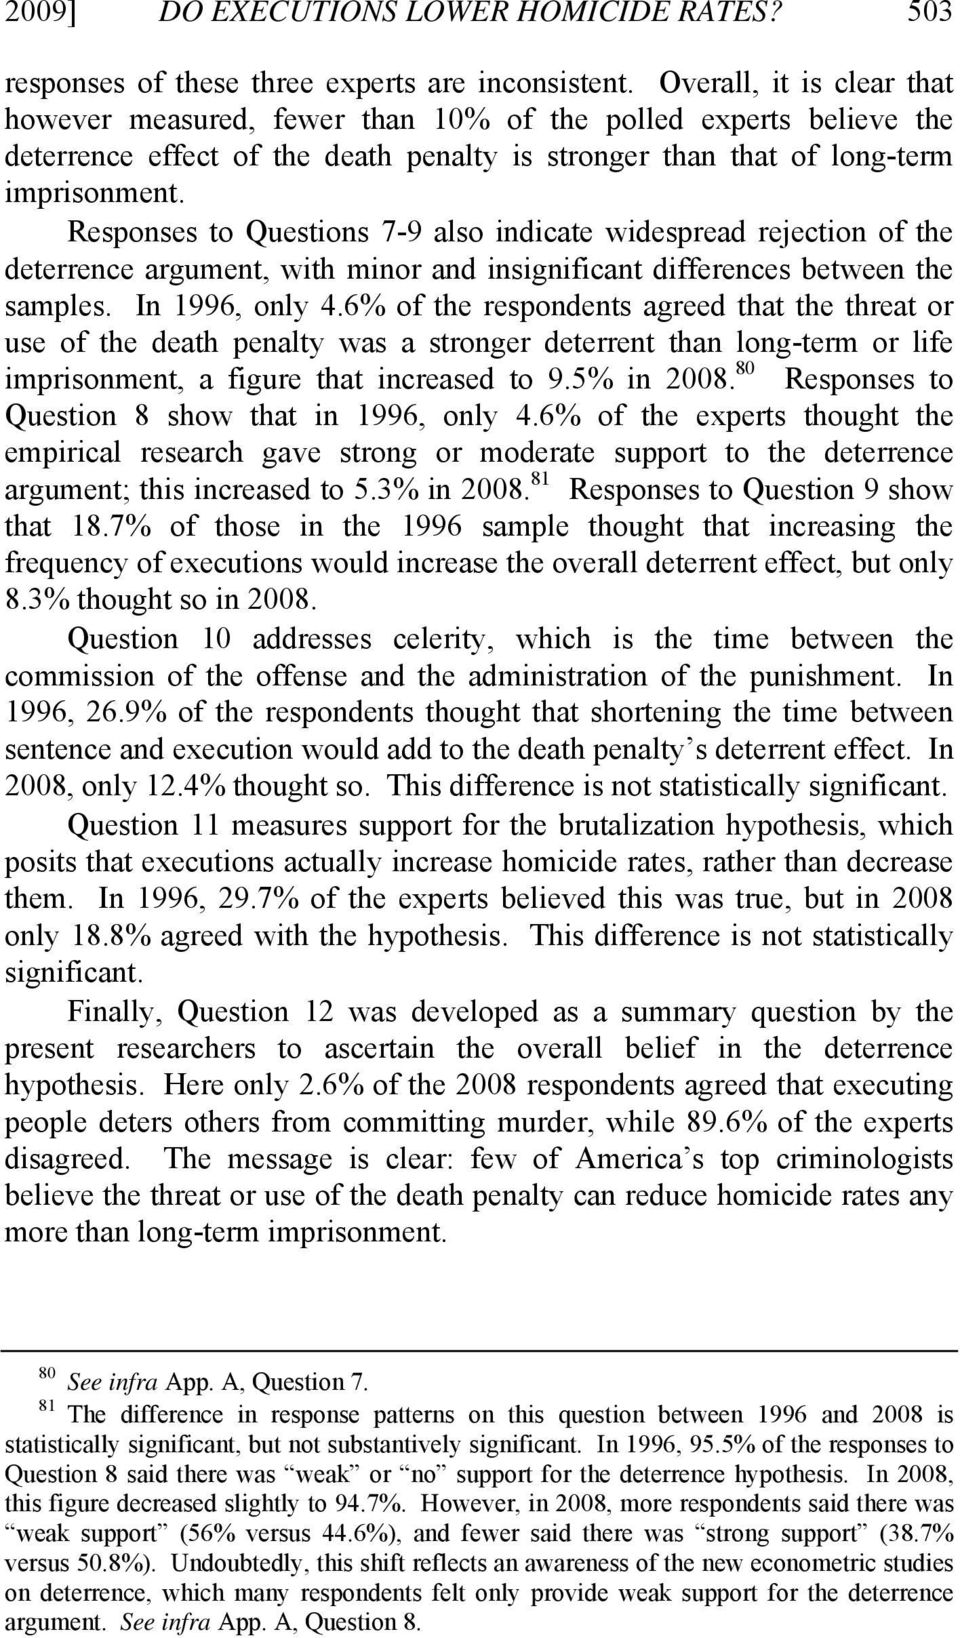 Responses to Questions 7-9 also indicate widespread rejection of the deterrence argument, with minor and insignificant differences between the samples. In 1996, only 4.